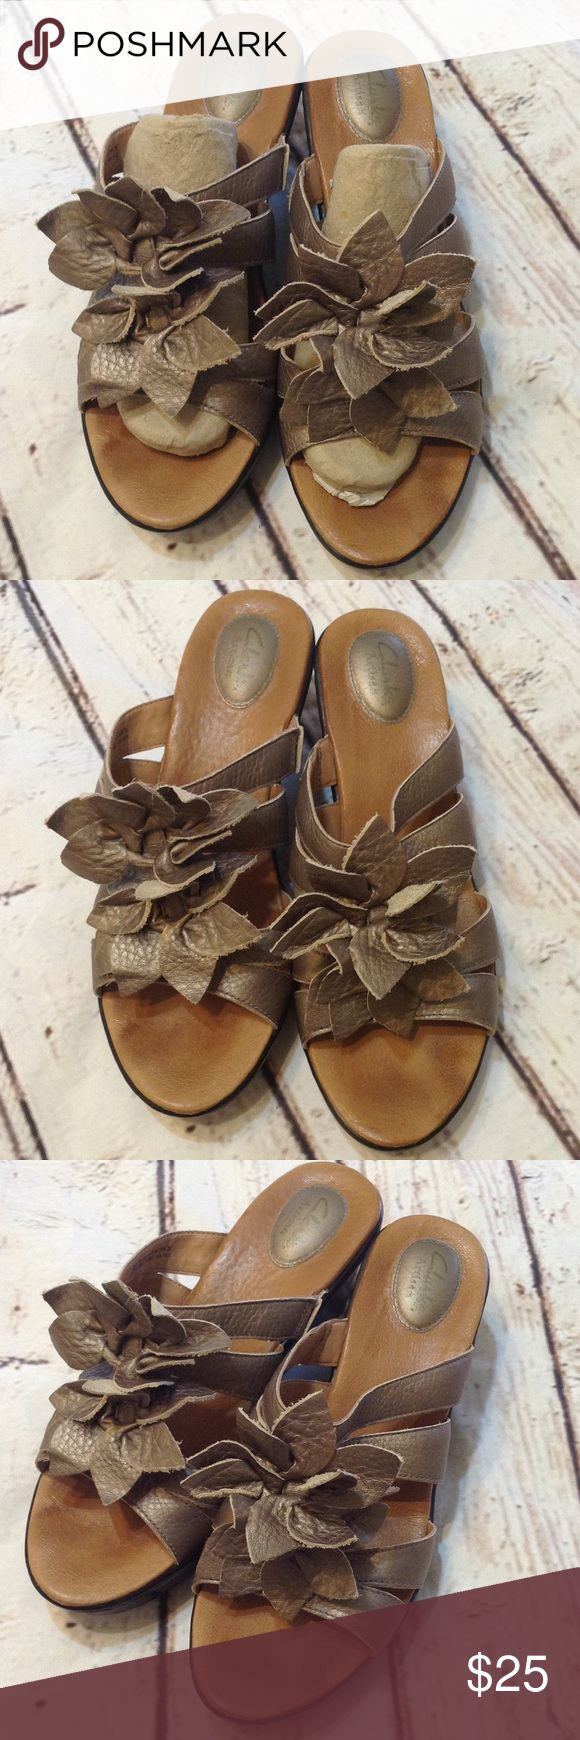 Clarks Sandals size 10M Size 10M  USA   Used but Still in good shape, thank you for looking Clarks Shoes Sandals